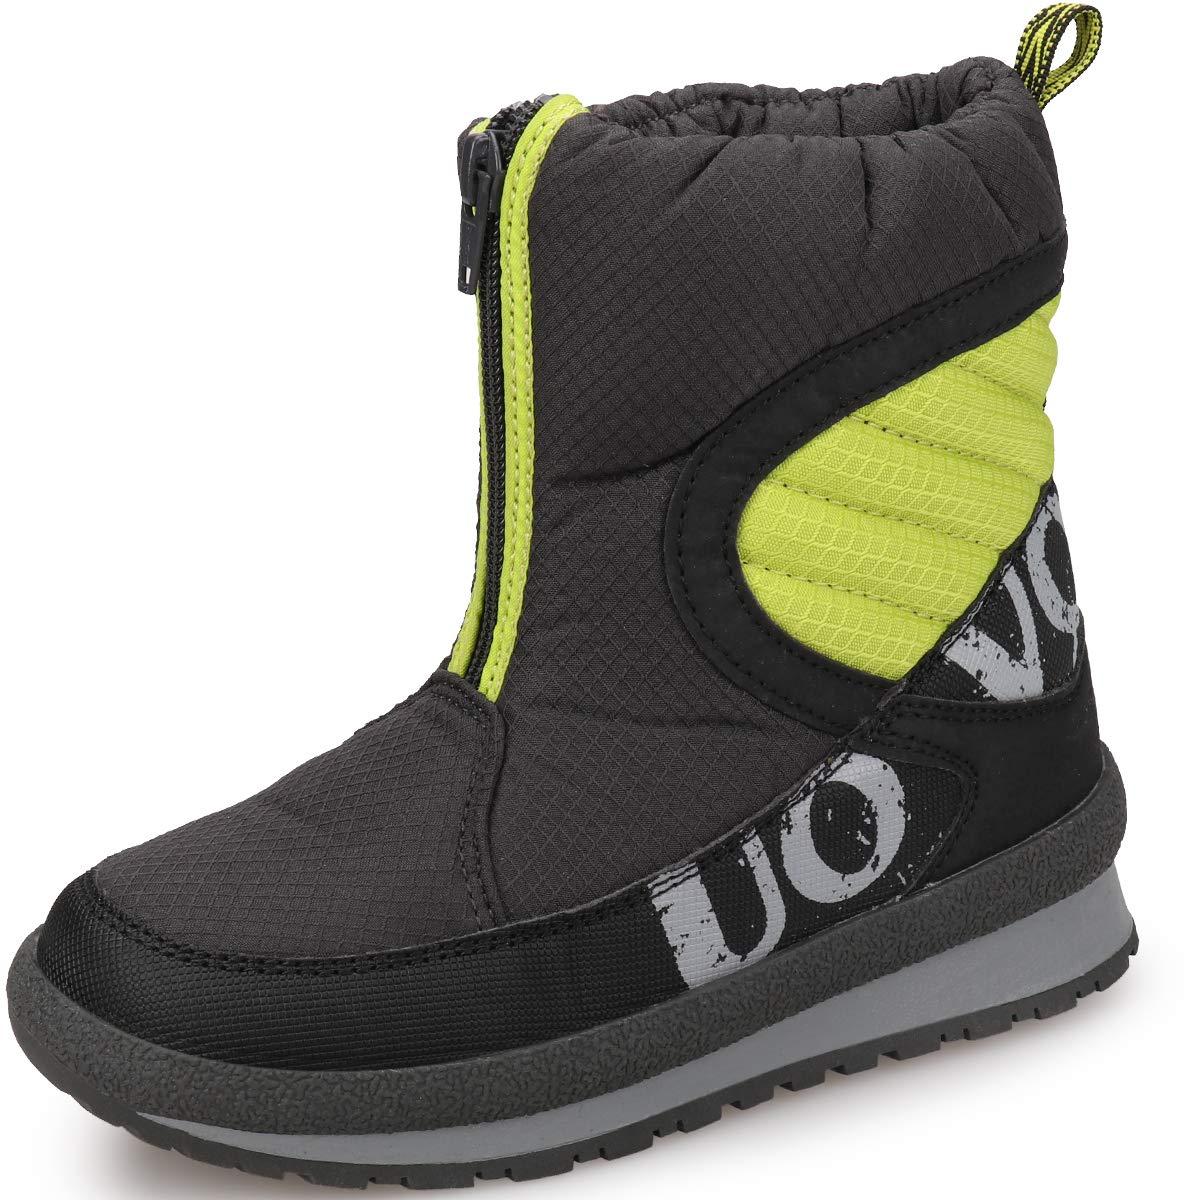 UOVO Boys Snow Boots Boys Winter Boots for Kids Waterproof Winter Shoes for Cold Weather Slip Resistant Warm Outdoor (Little Kids/Big Kids)